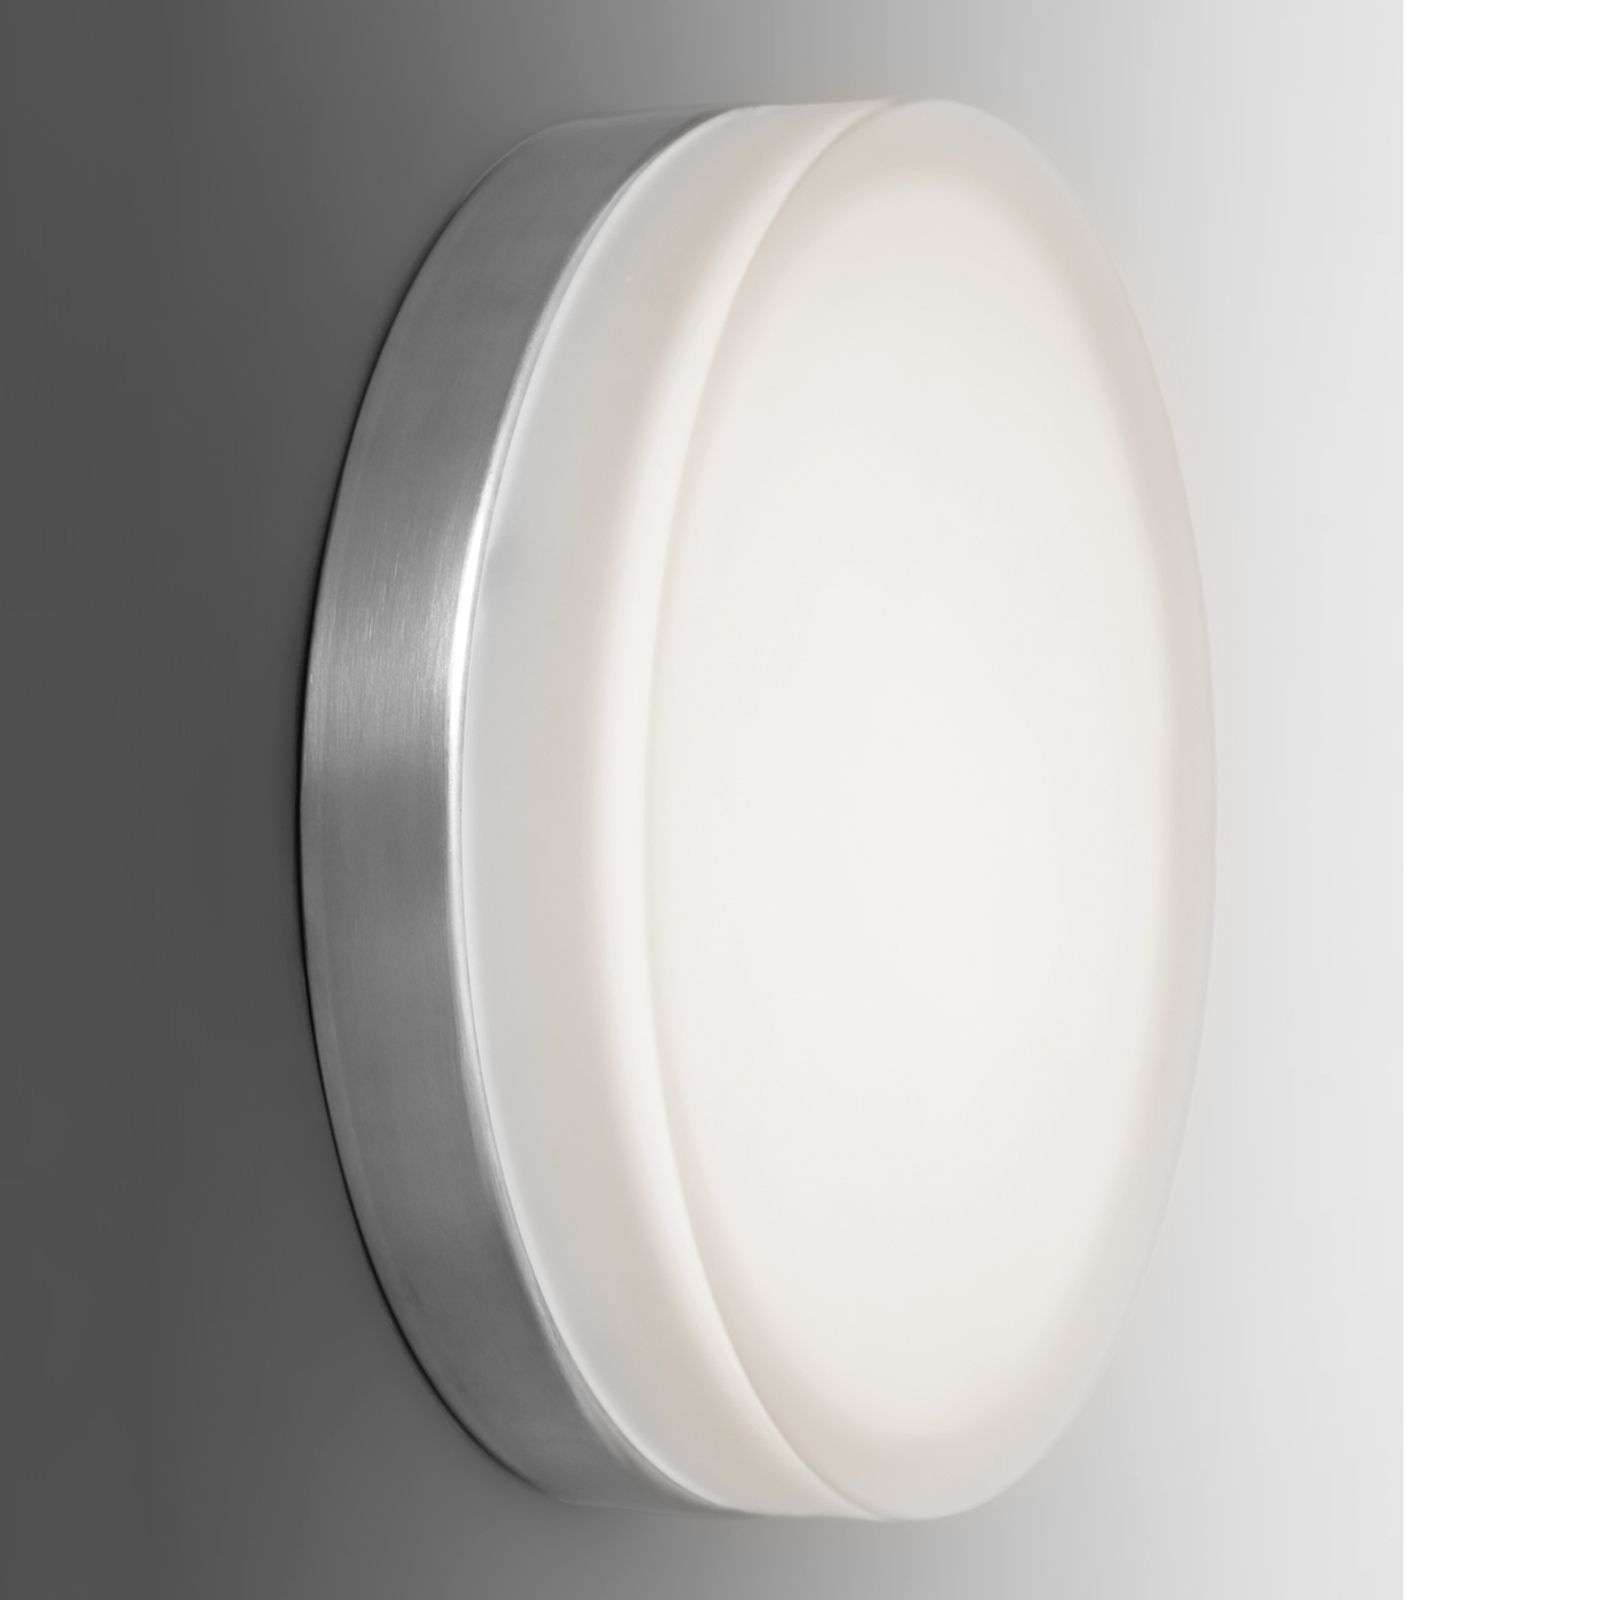 Bella applique LED Briq 01L a luce calda